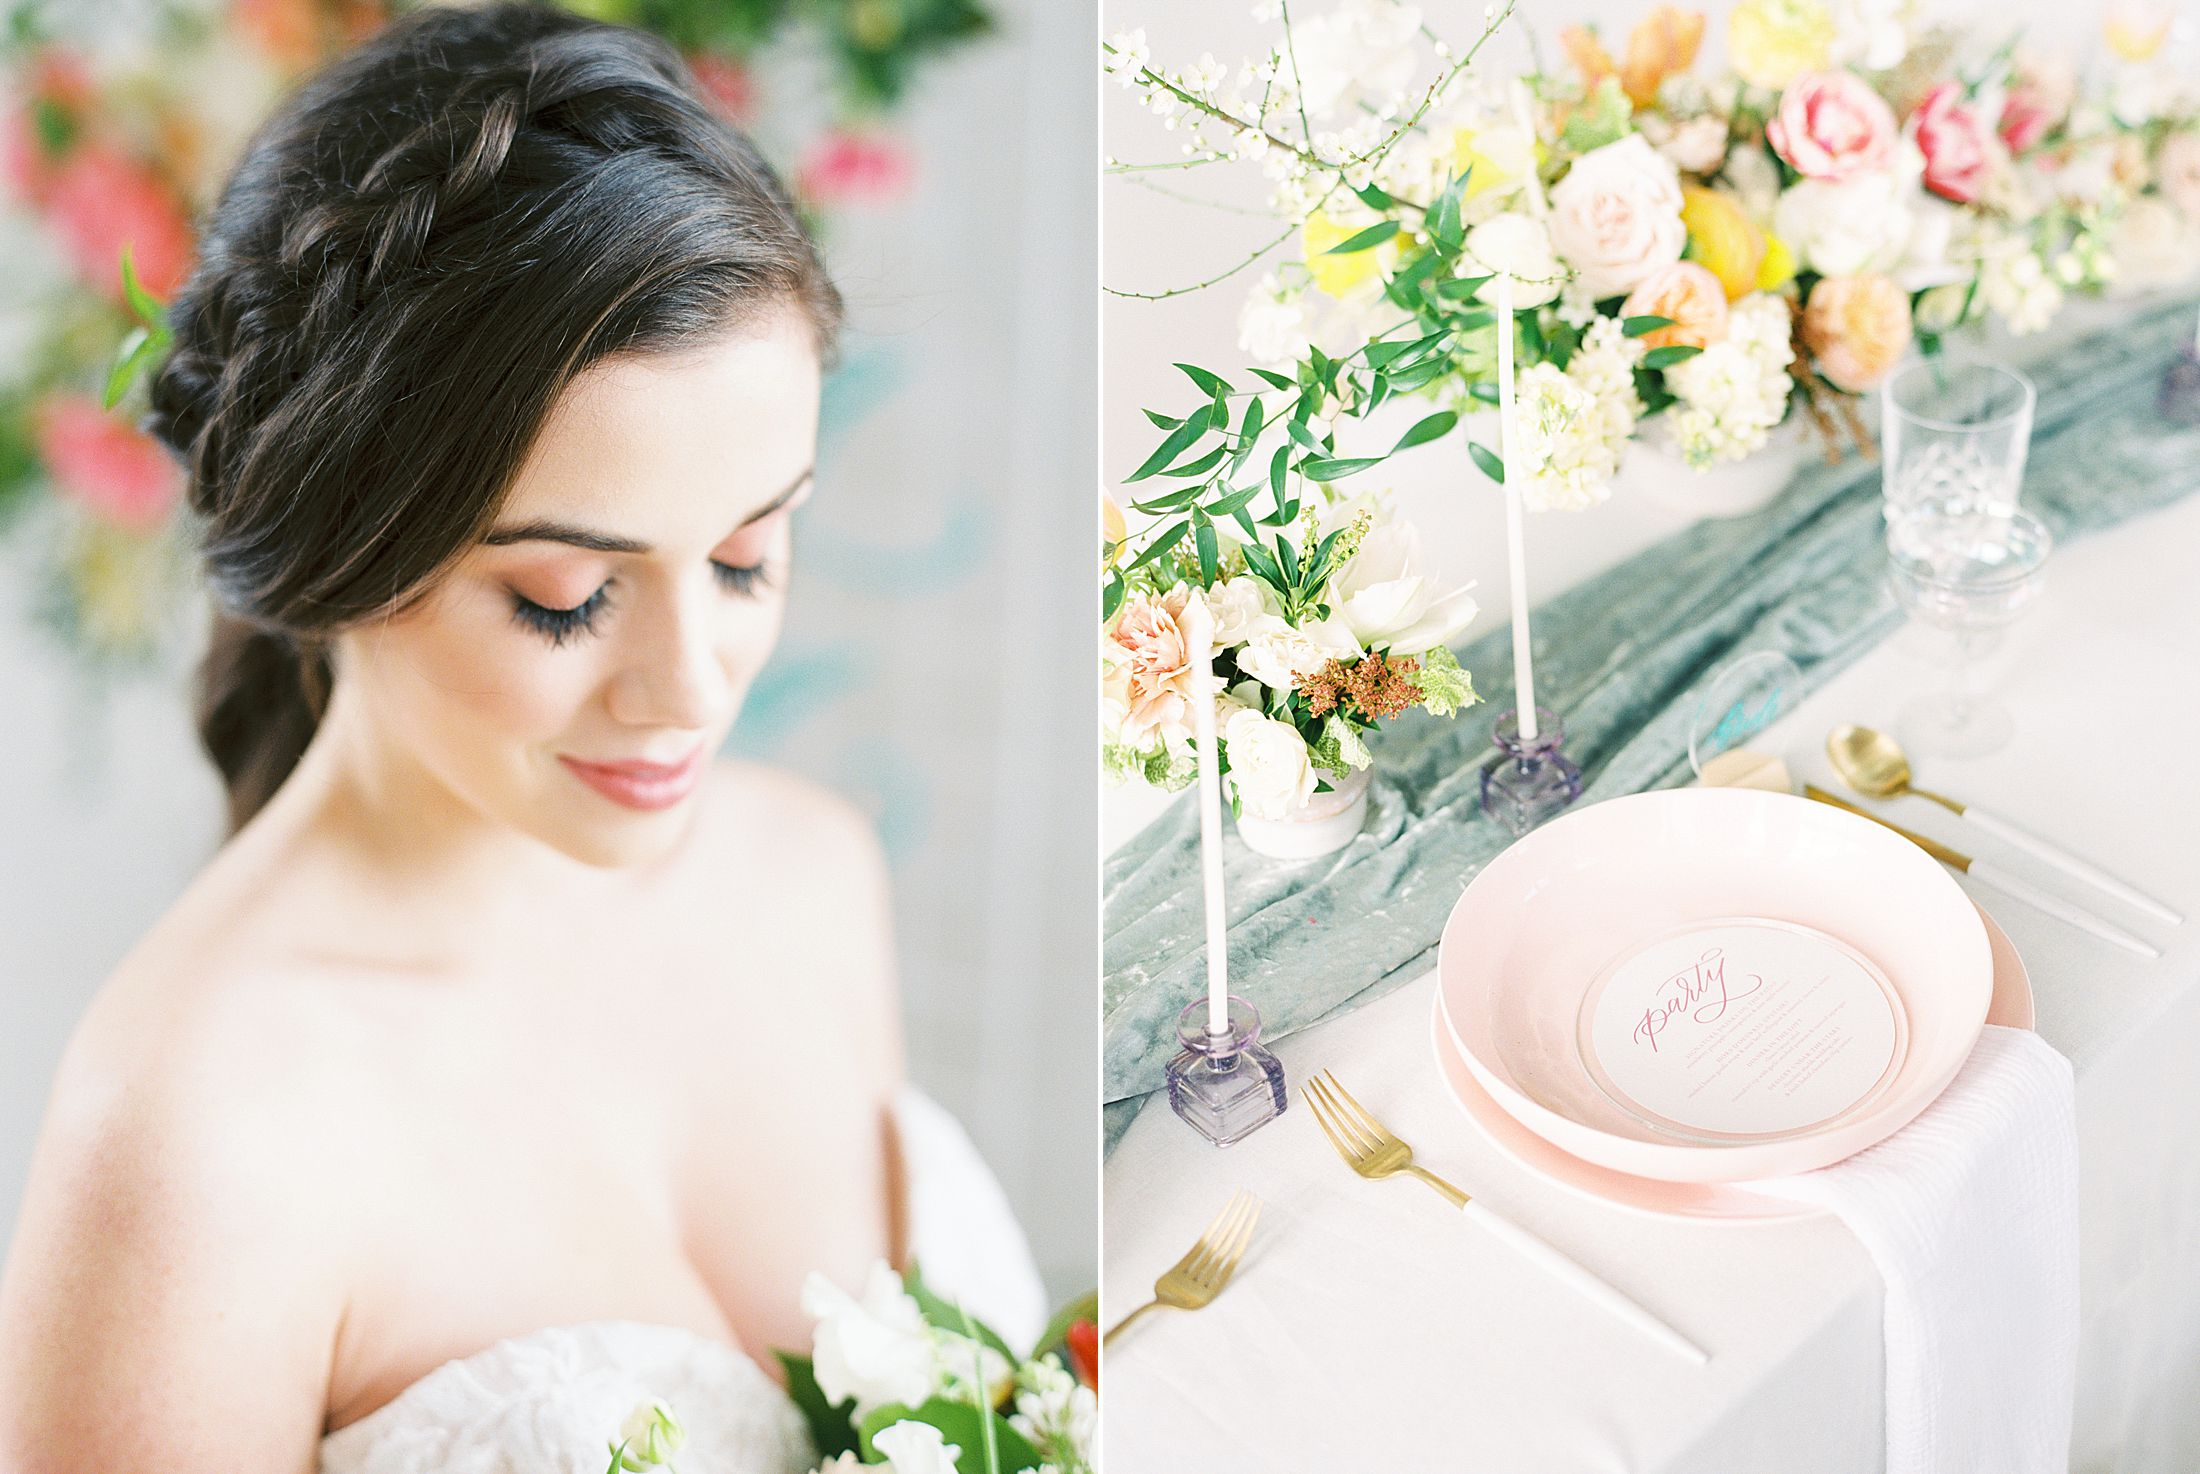 Bay Area Spring Wedding Inspiration - Ashley Baumgartner - Inspired By This - Party Crush Studio and Lens of Lenox Videography - Bay Area Wedding Photography_0021.jpg